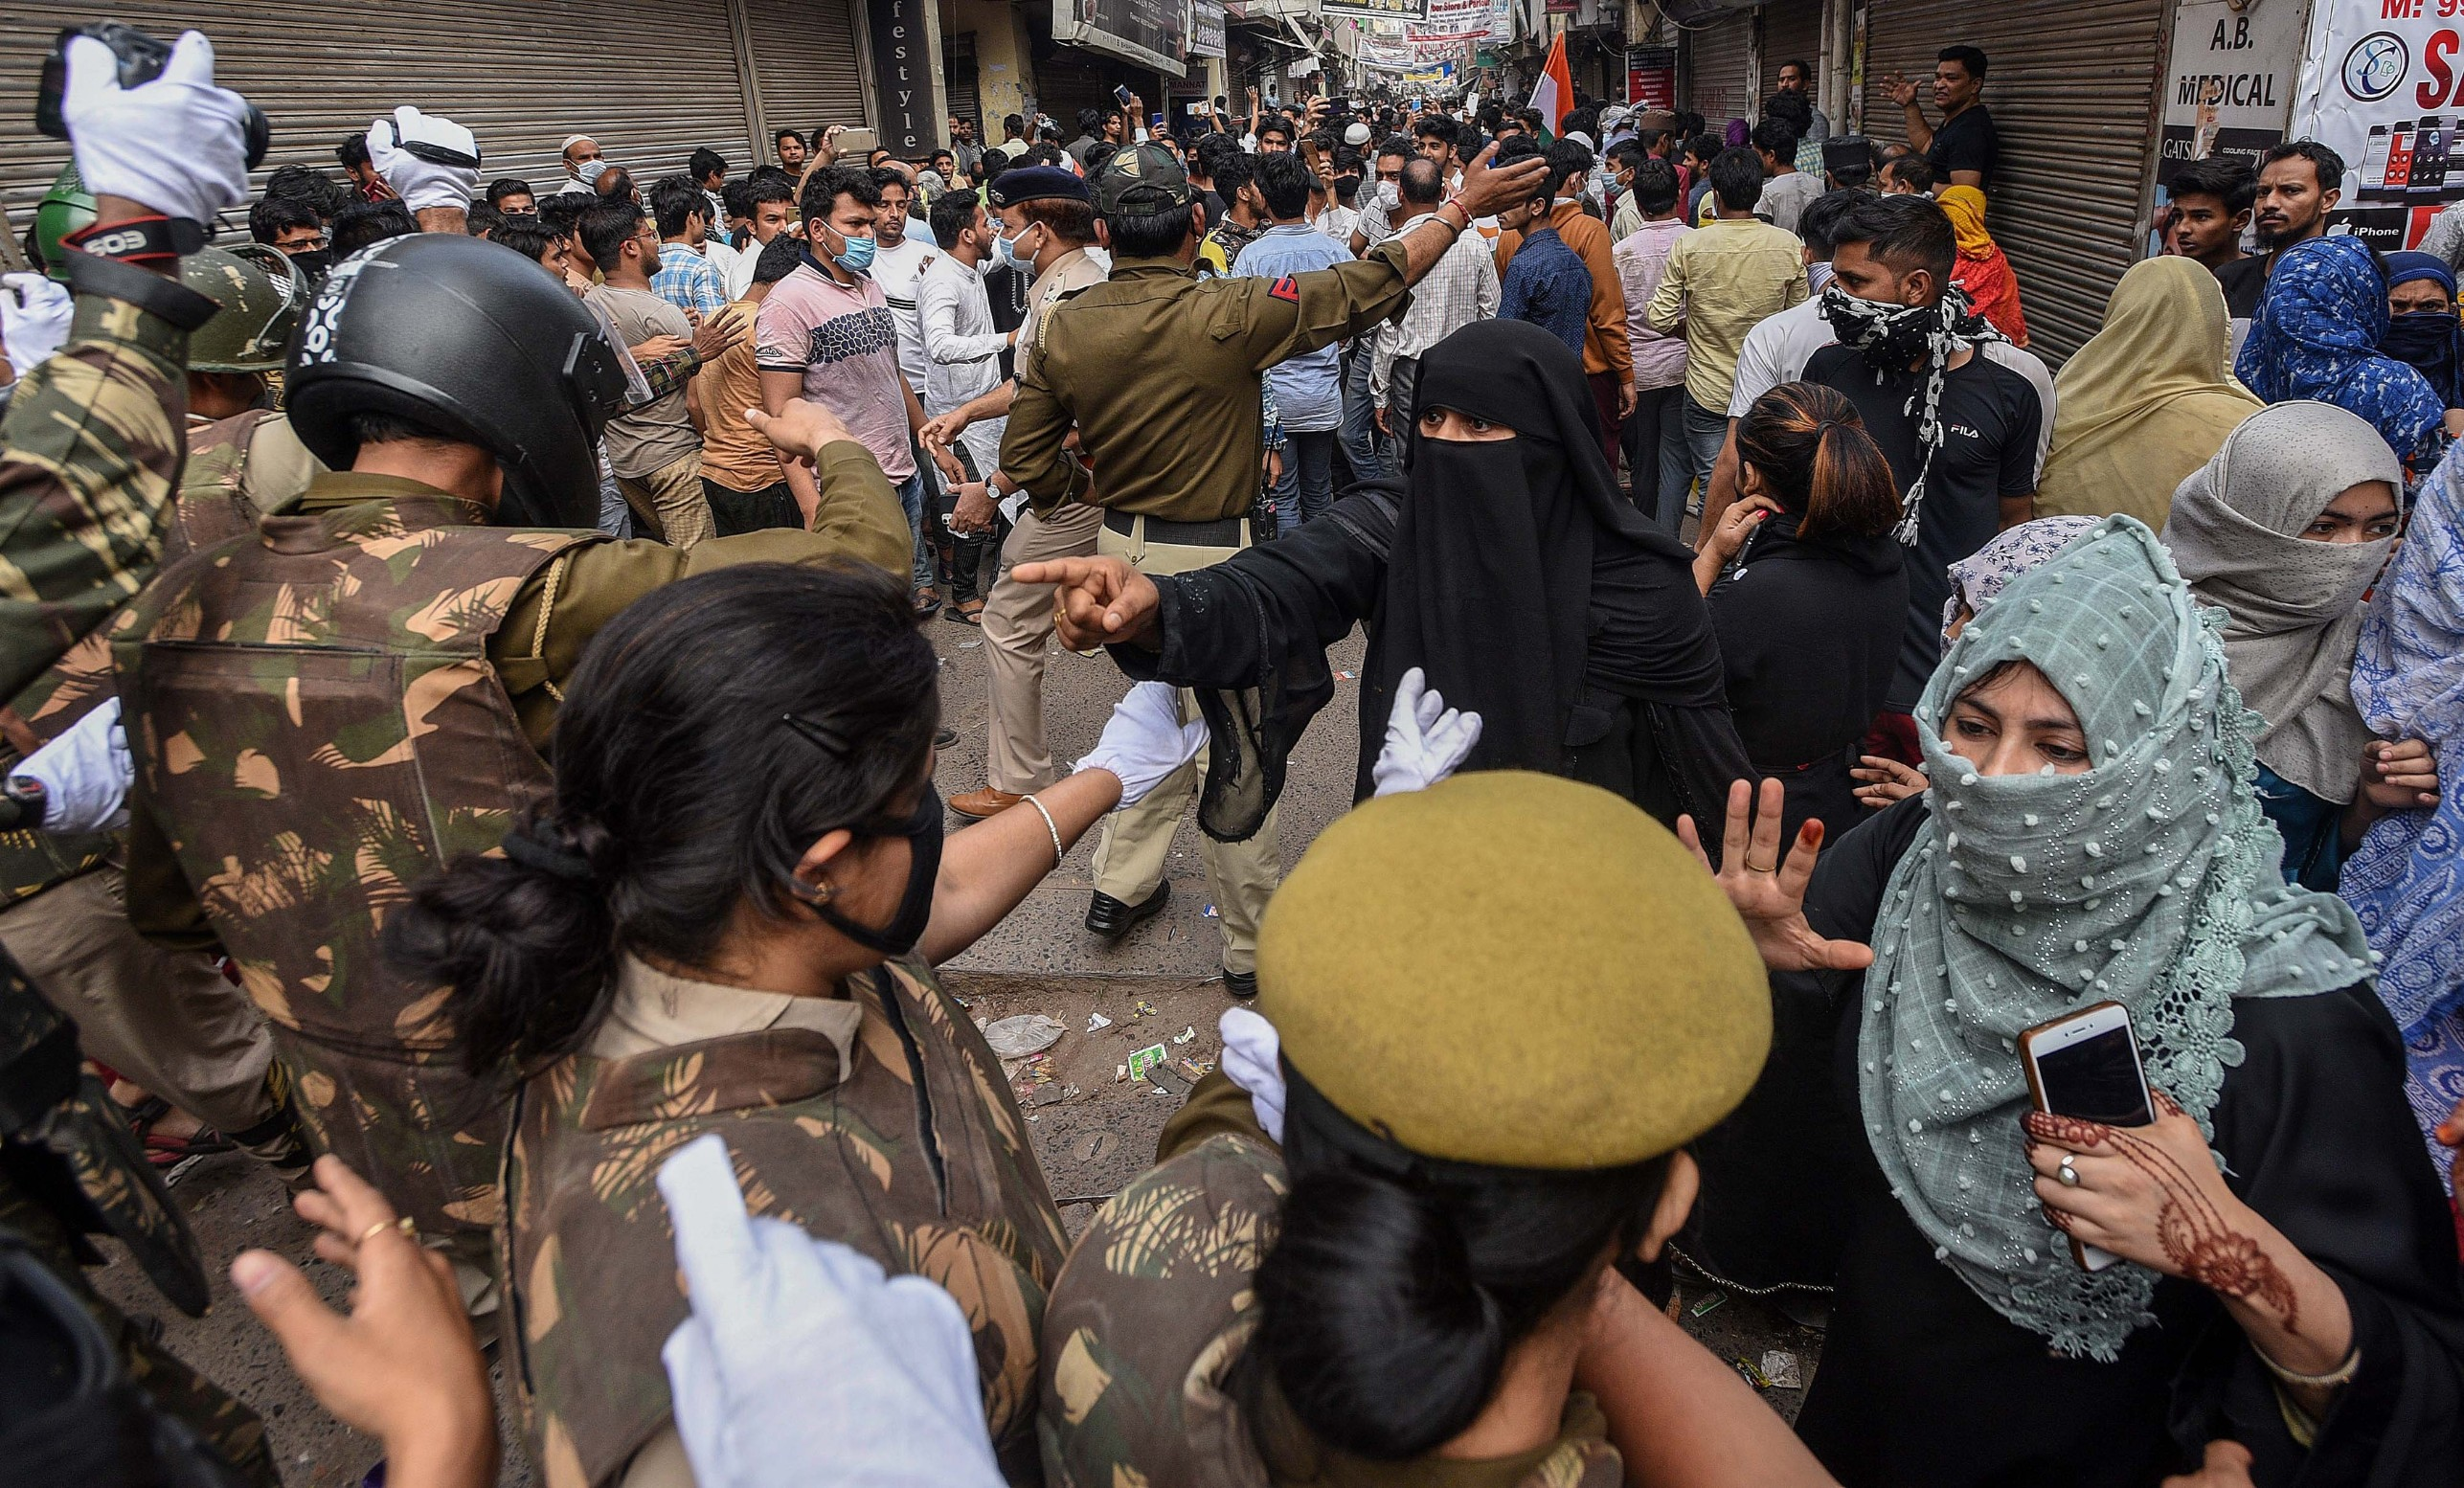 NEW DELHI, INDIA - MARCH 24: Police personnel attempt to disperse residents who had assembled during the clearing of the site of an indefinite sit-in, at Shaheen Bagh on March 24, 2020 in New Delhi, India. The police cleared the anti CAA, NRC and NPR protest site amid a prevailing lockdown in the national capital in the wake of coronavirus., Image: 509207086, License: Rights-managed, Restrictions: *** World Rights ***, Model Release: no, Credit line: Hindustan Times / ddp USA / Profimedia